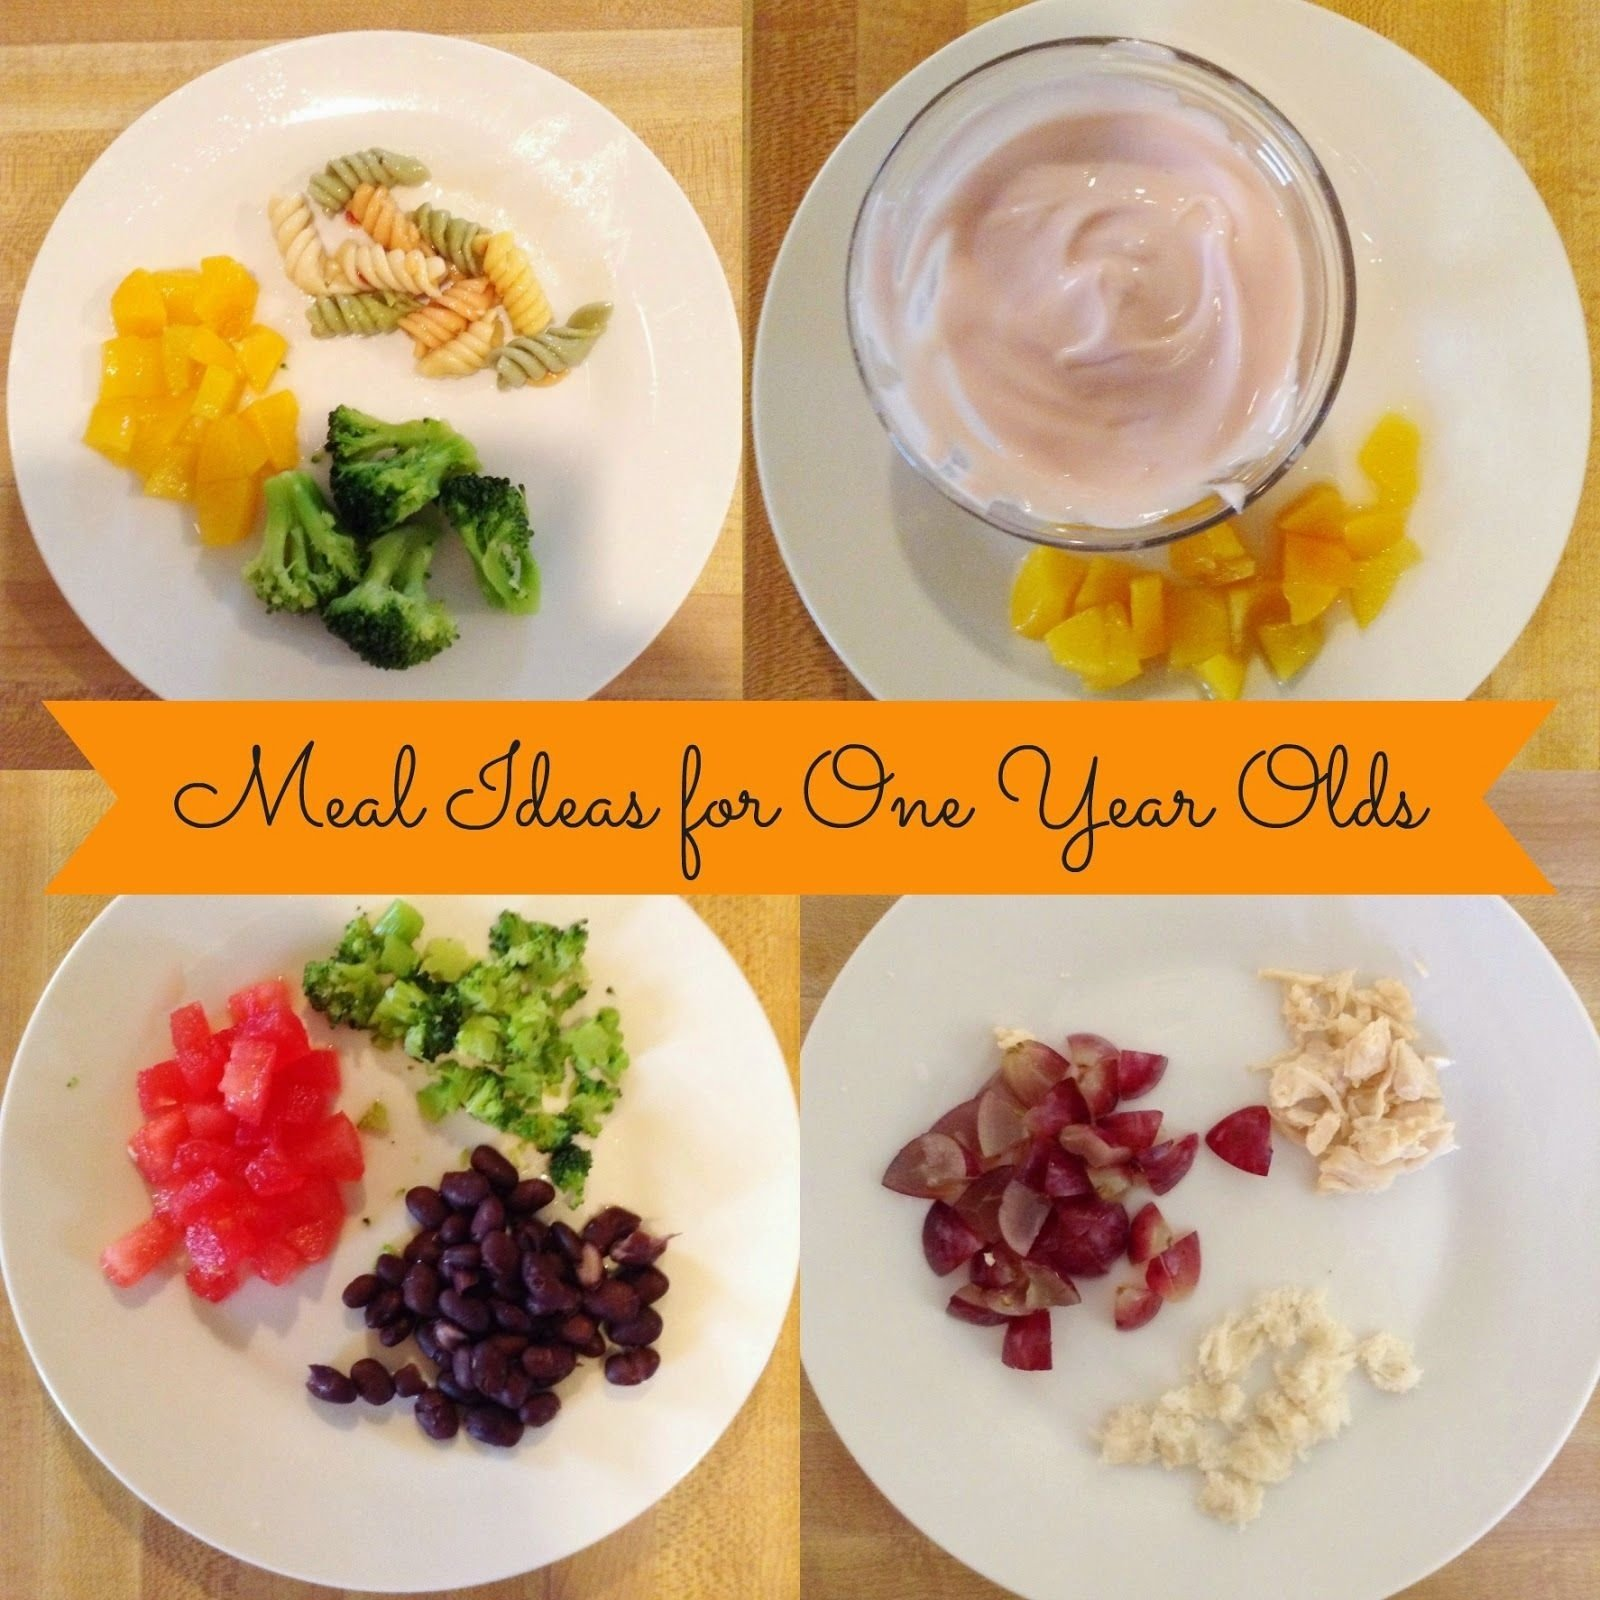 10 Unique Food Ideas For One Year Old little madi grace meals ideas for one year old baby toddler food 5